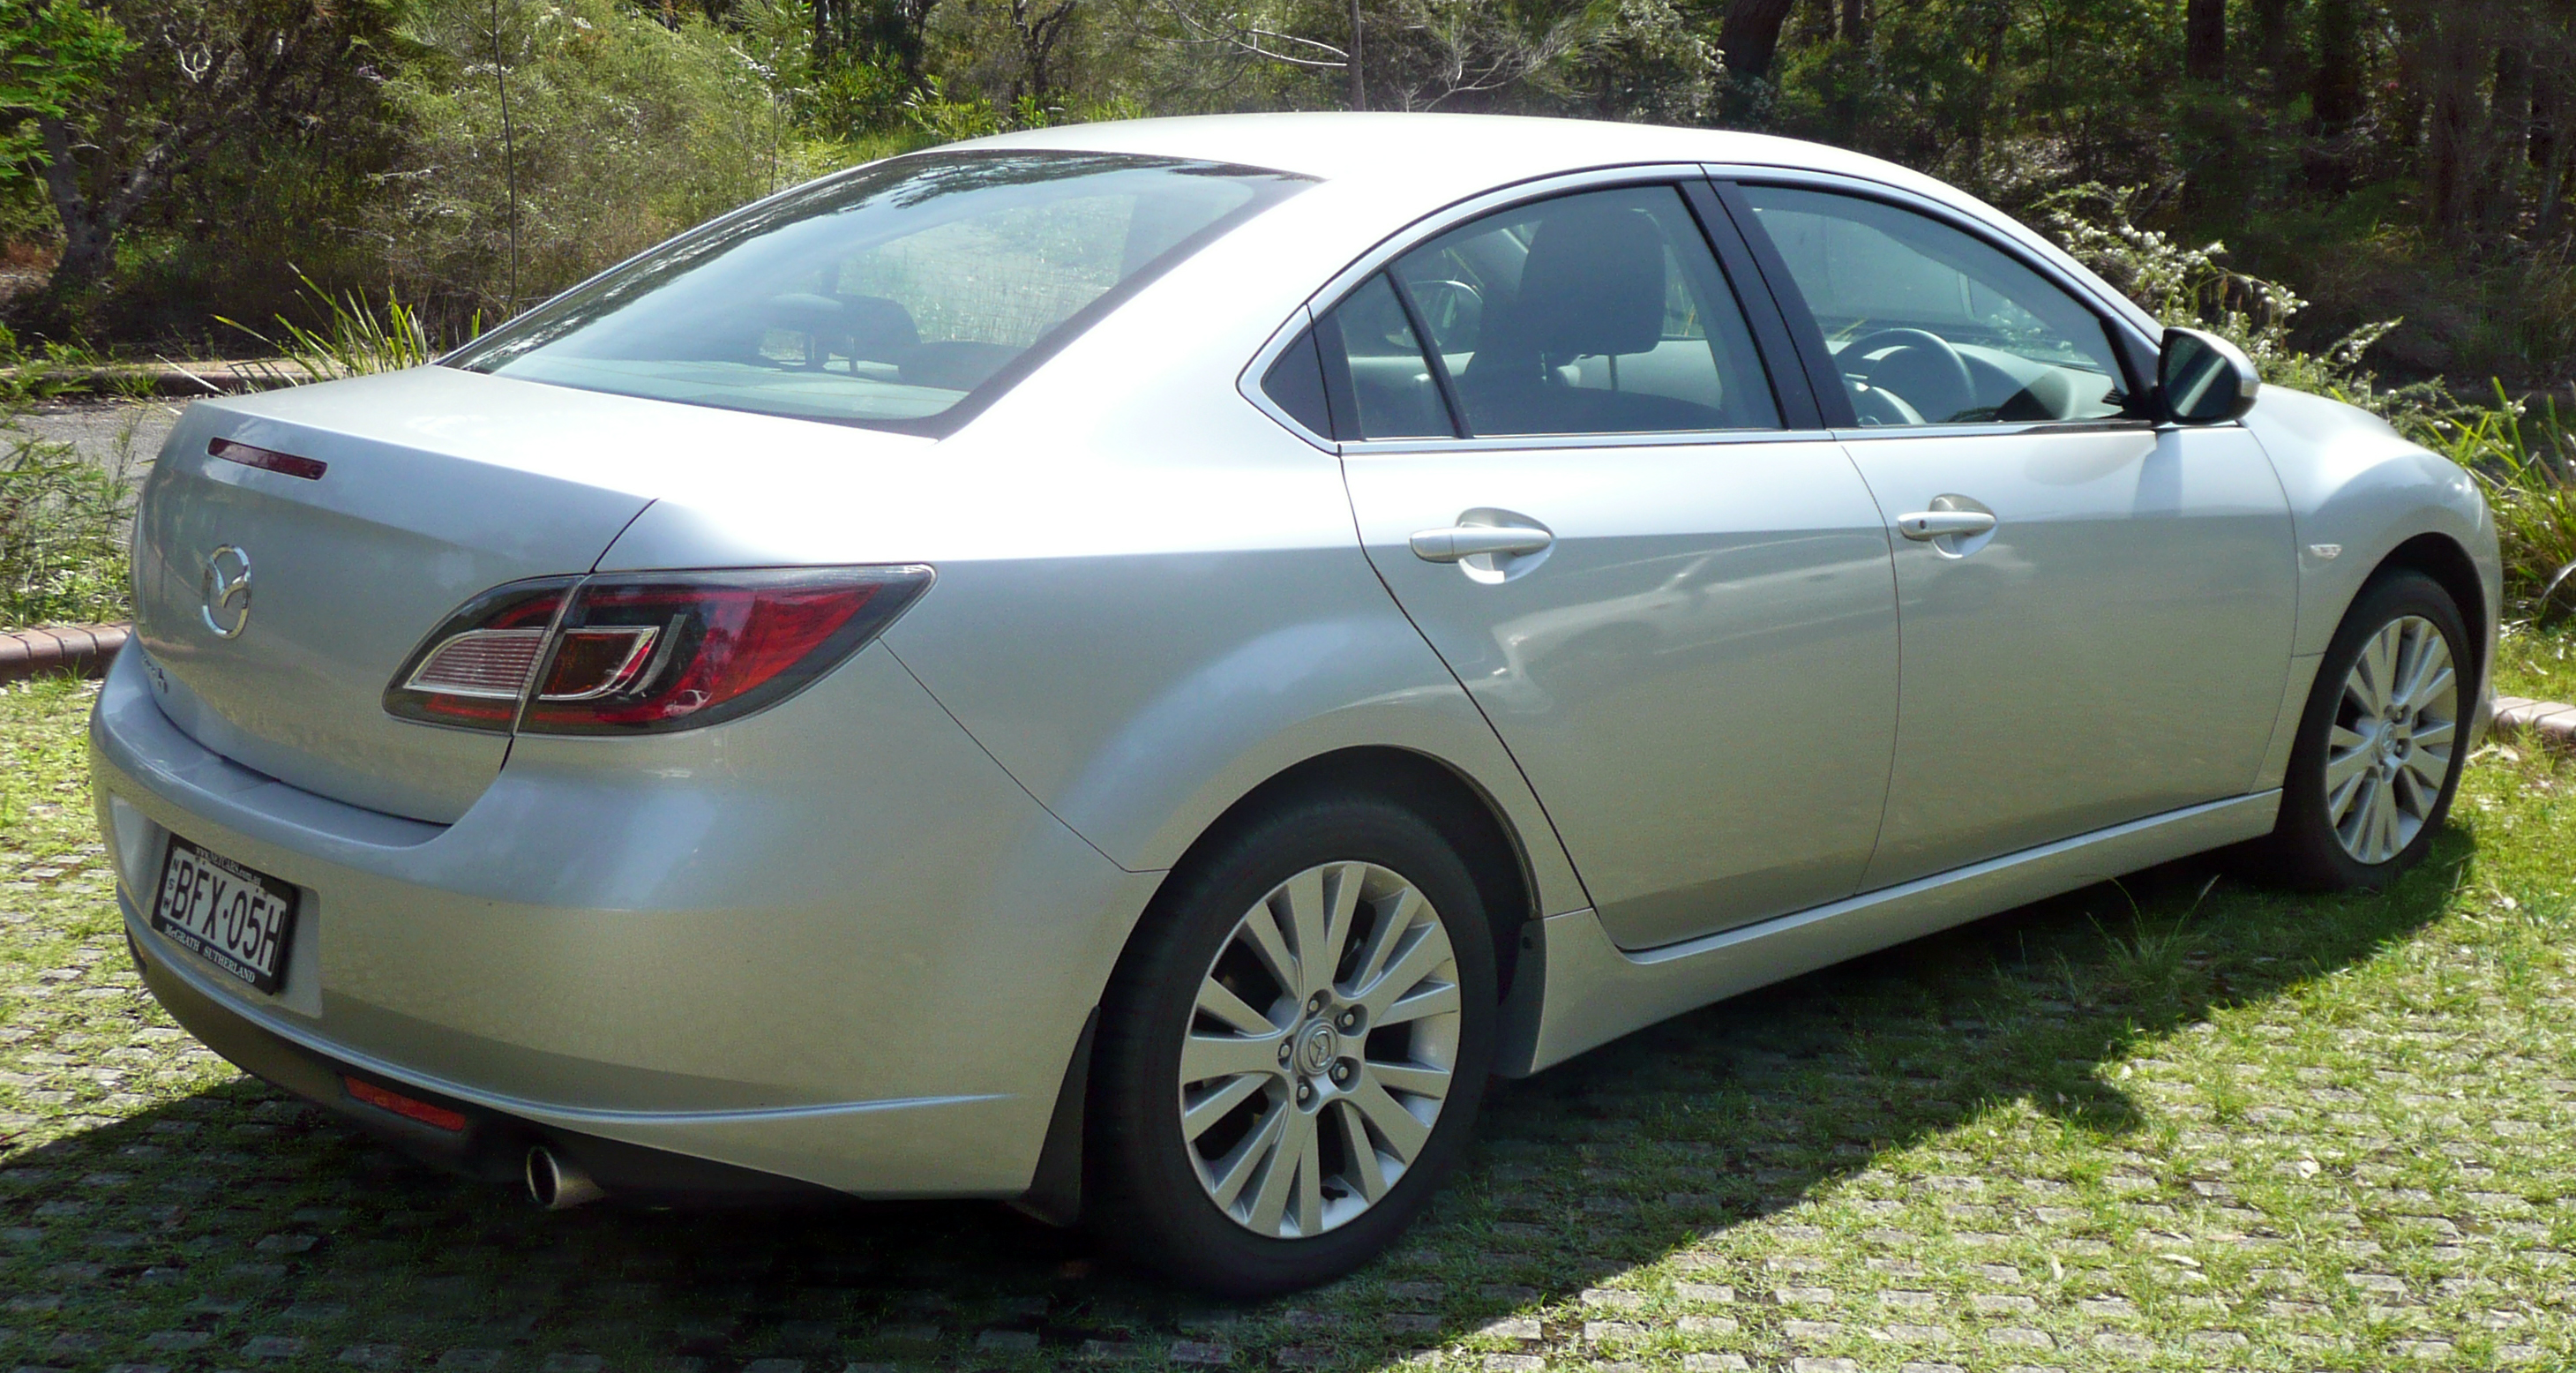 https://upload.wikimedia.org/wikipedia/commons/d/d9/2008_Mazda6_%28GH%29_Classic_sedan_%282009-11-12%29_02.jpg